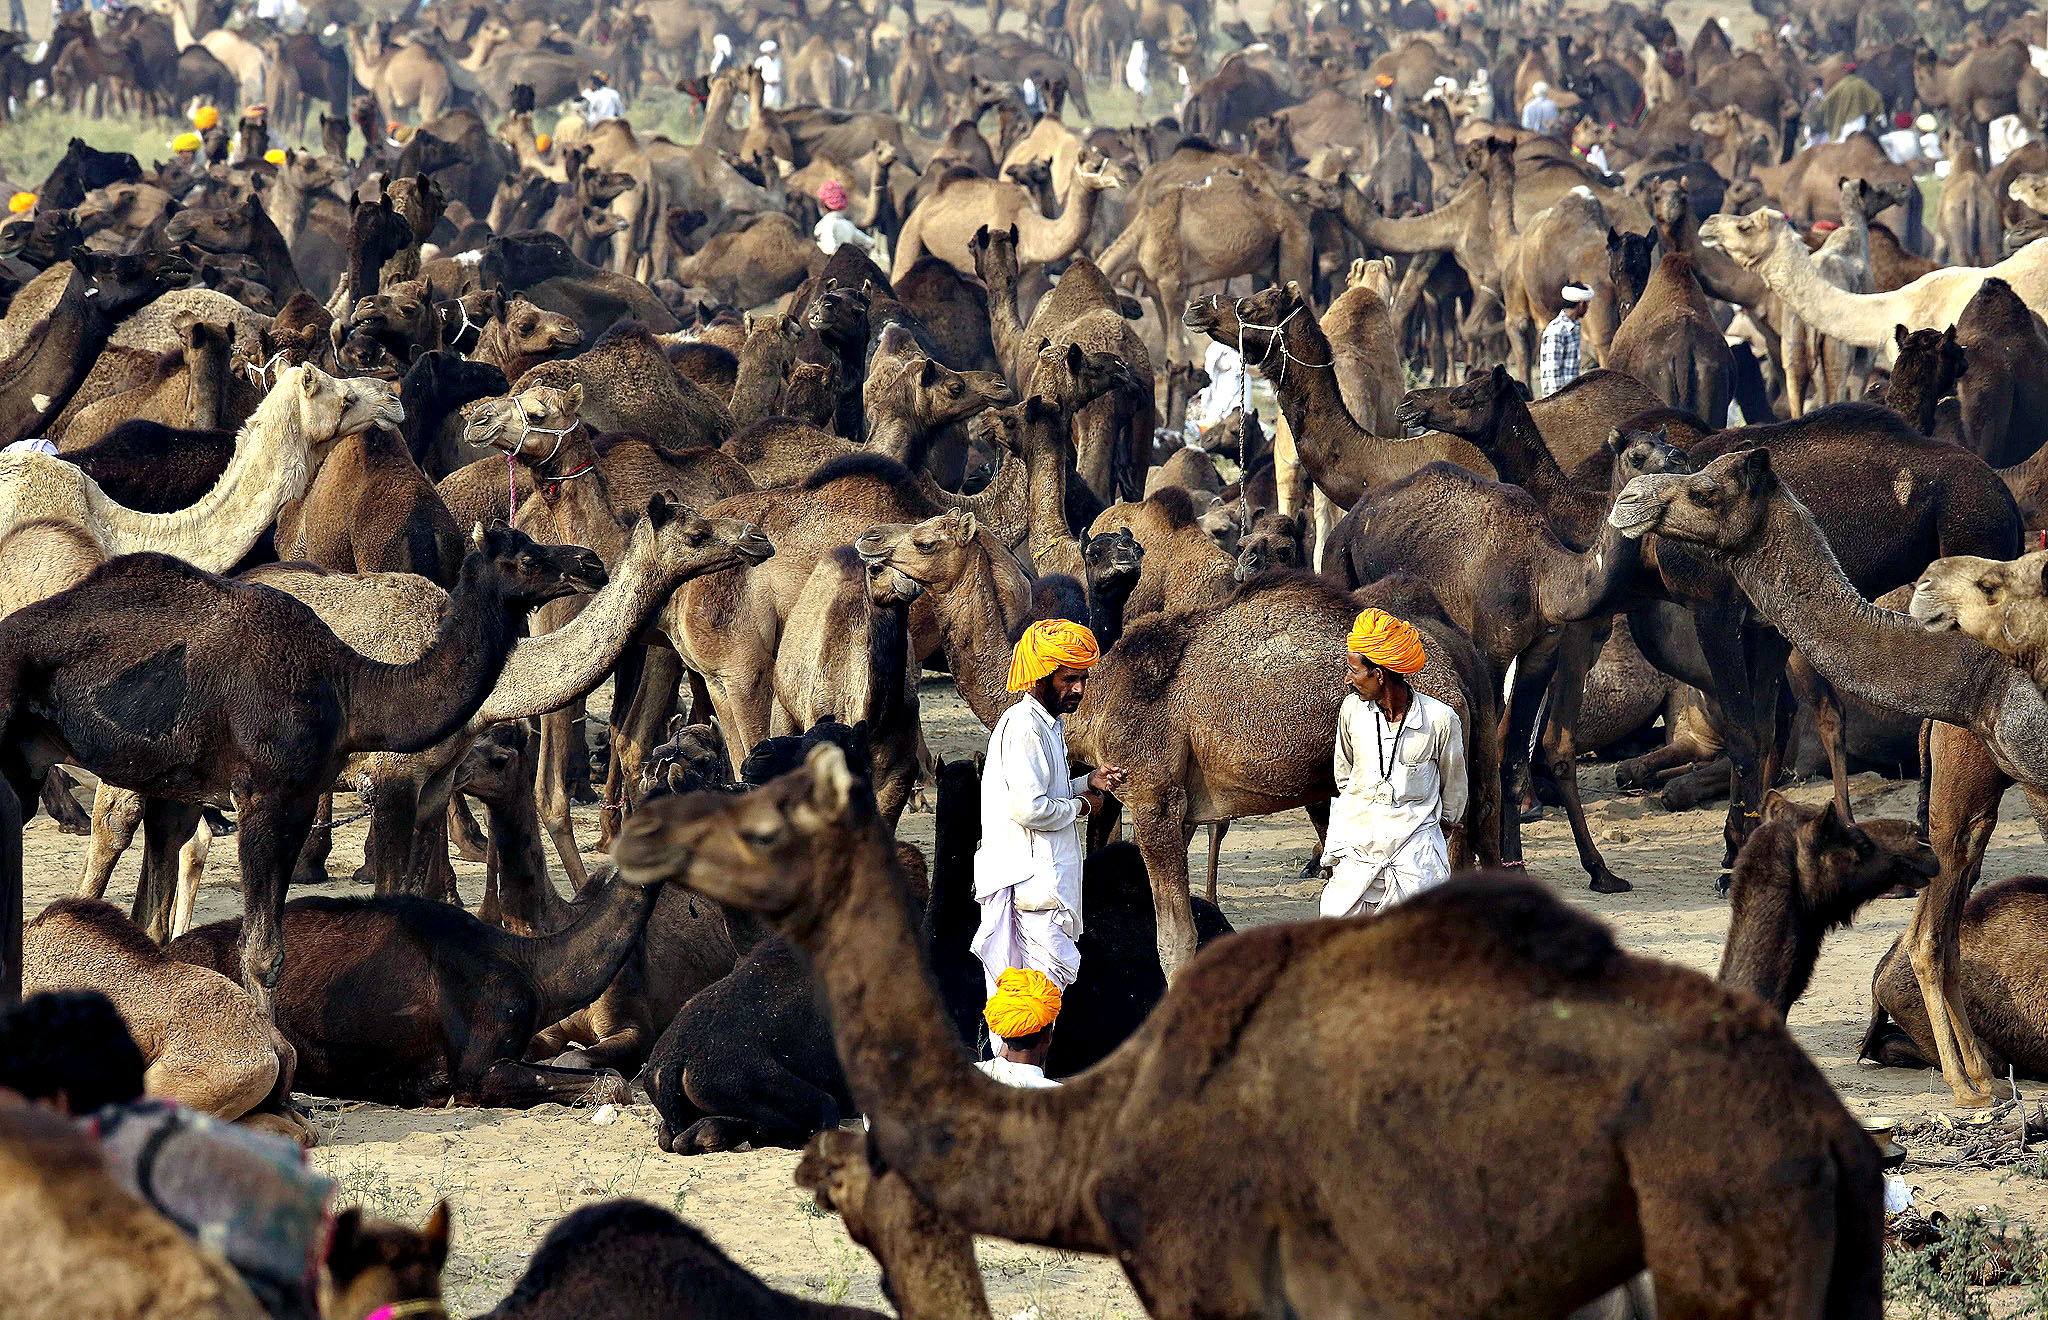 Rajasthani camel vendors and buyers interacts during the Pushkar Fair or Pushkar ka Mela, one of the world's largest cattle fairs, in Pushkar, Rajasthan state, India, 11 November 2013. Around 50,000 camels are sold, decorated, shaved and raced at the event.